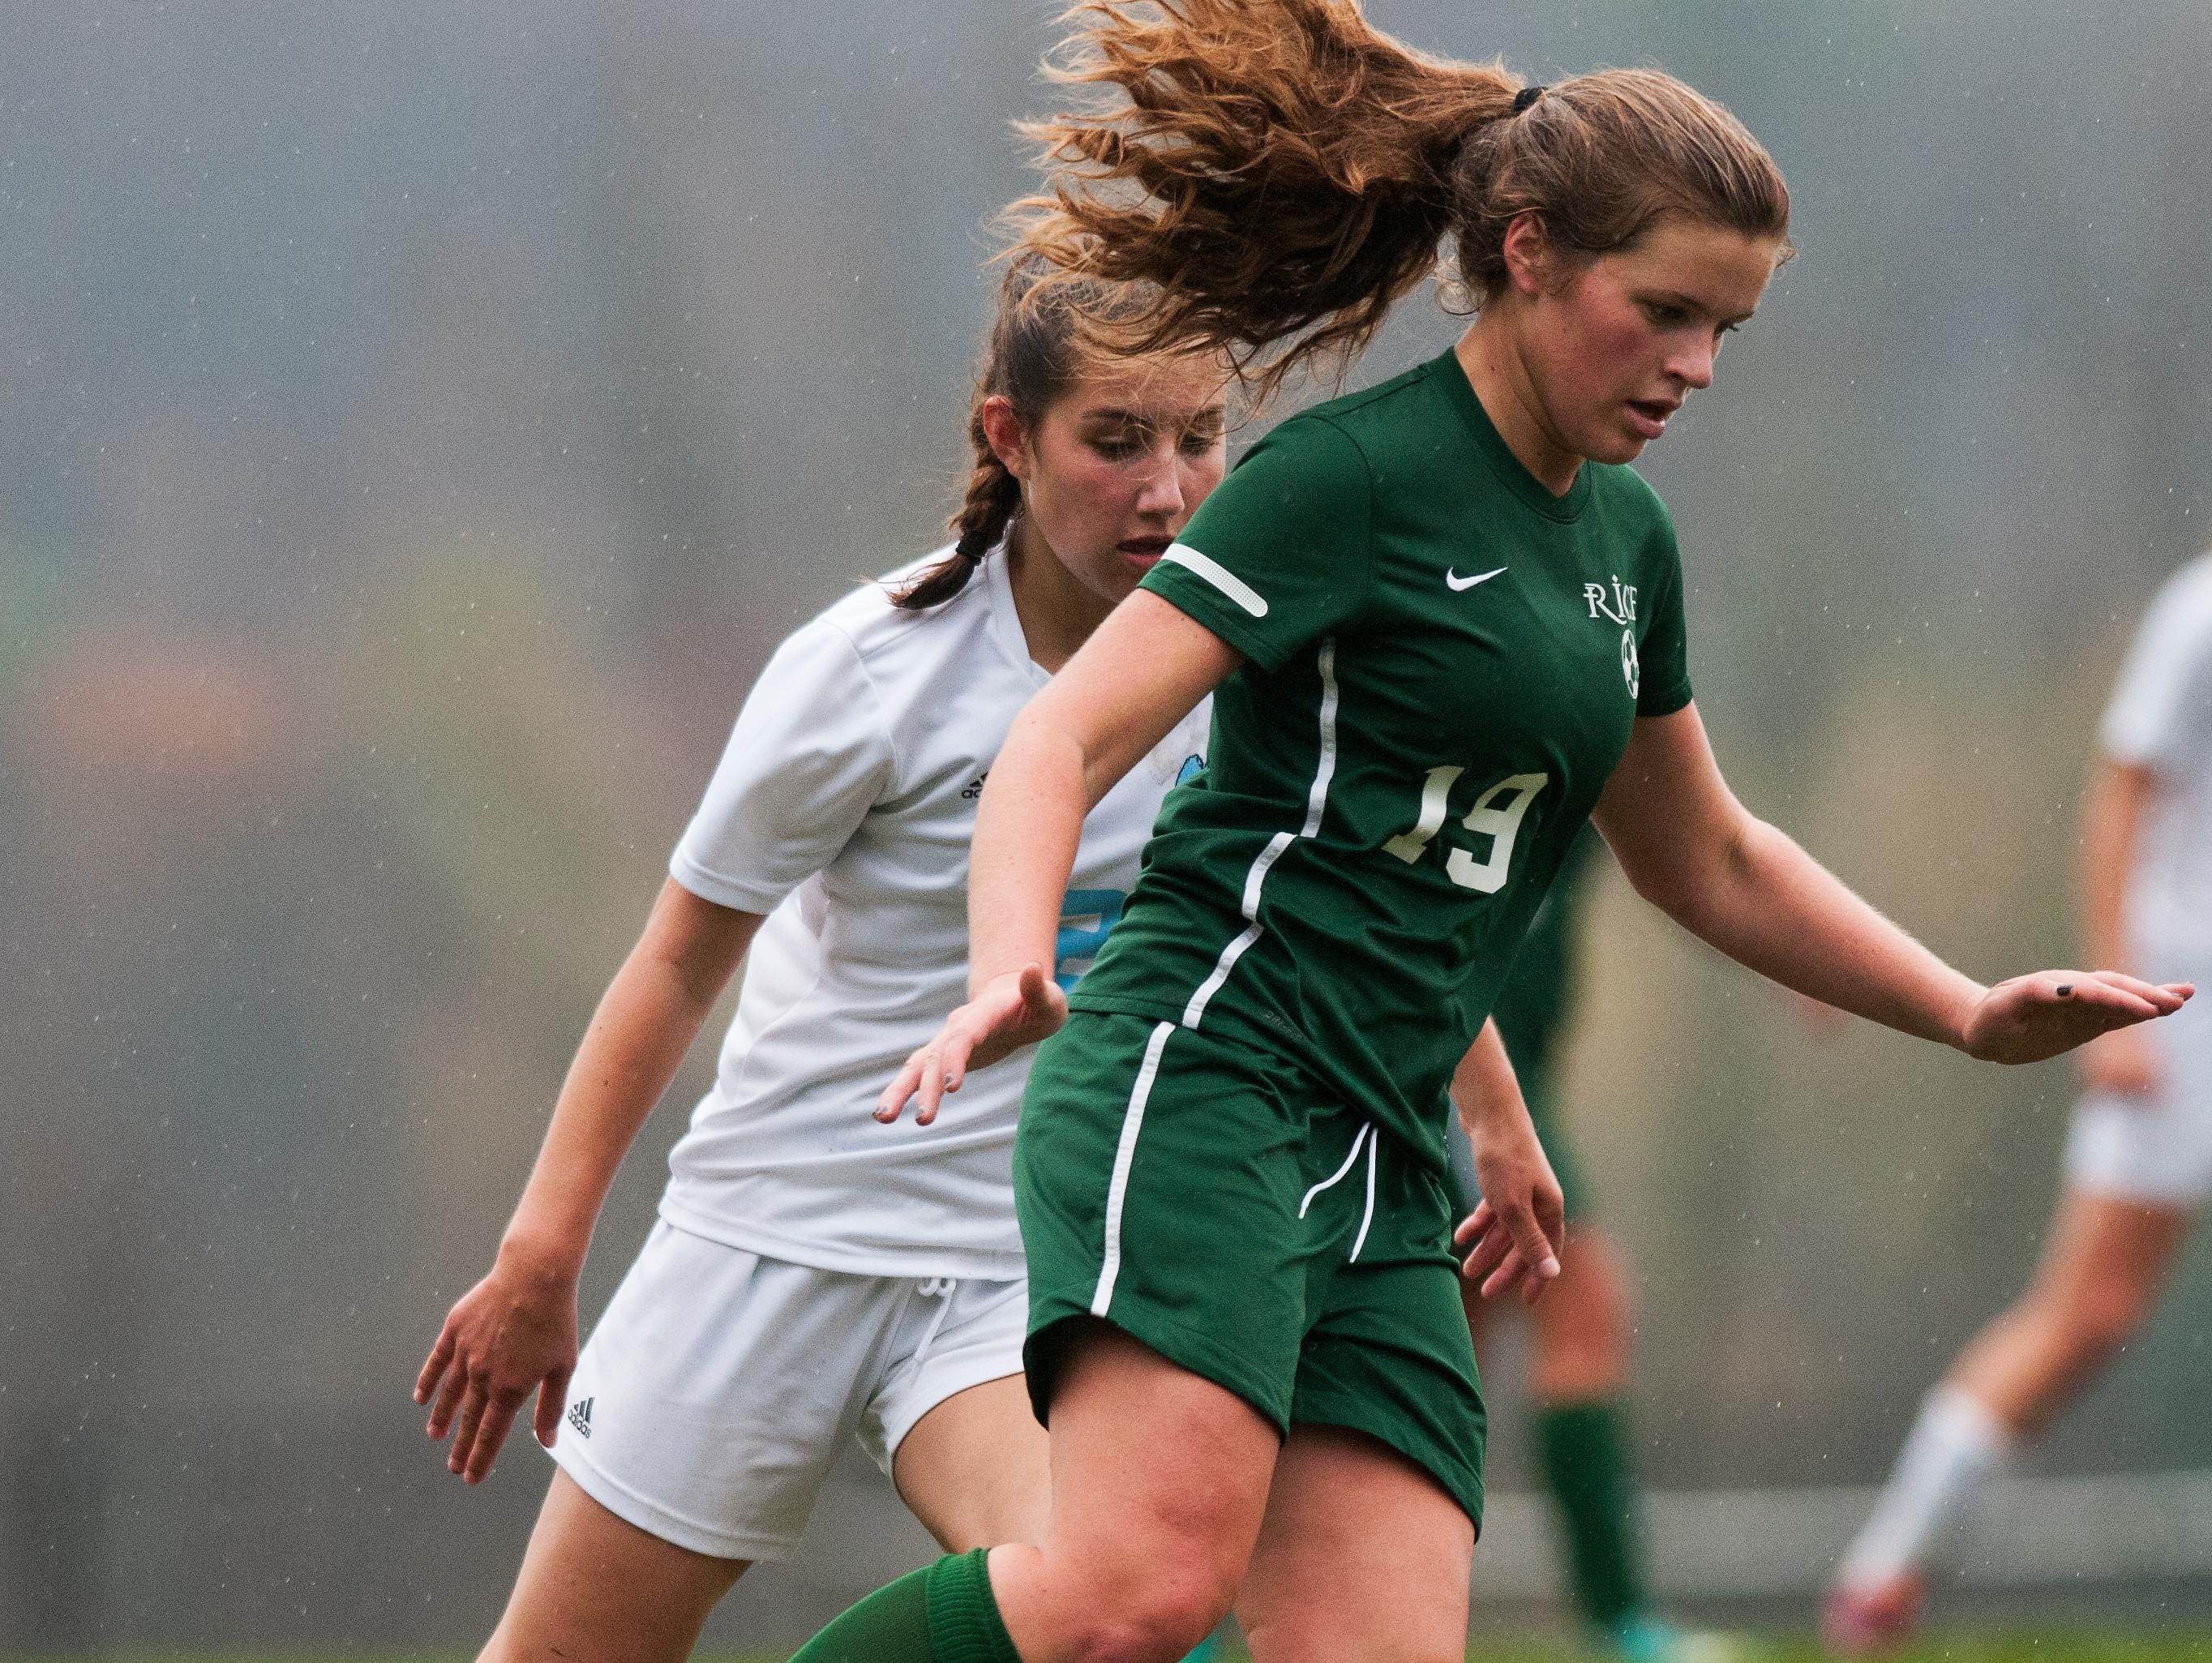 Rice's Margot Rathke (19) runs with the ball past MMU's Amelia Knakal (2) during the girls soccer playoff game between the Rice Green Knights and the Mount Mansfield Cougars at MMU in 2014.